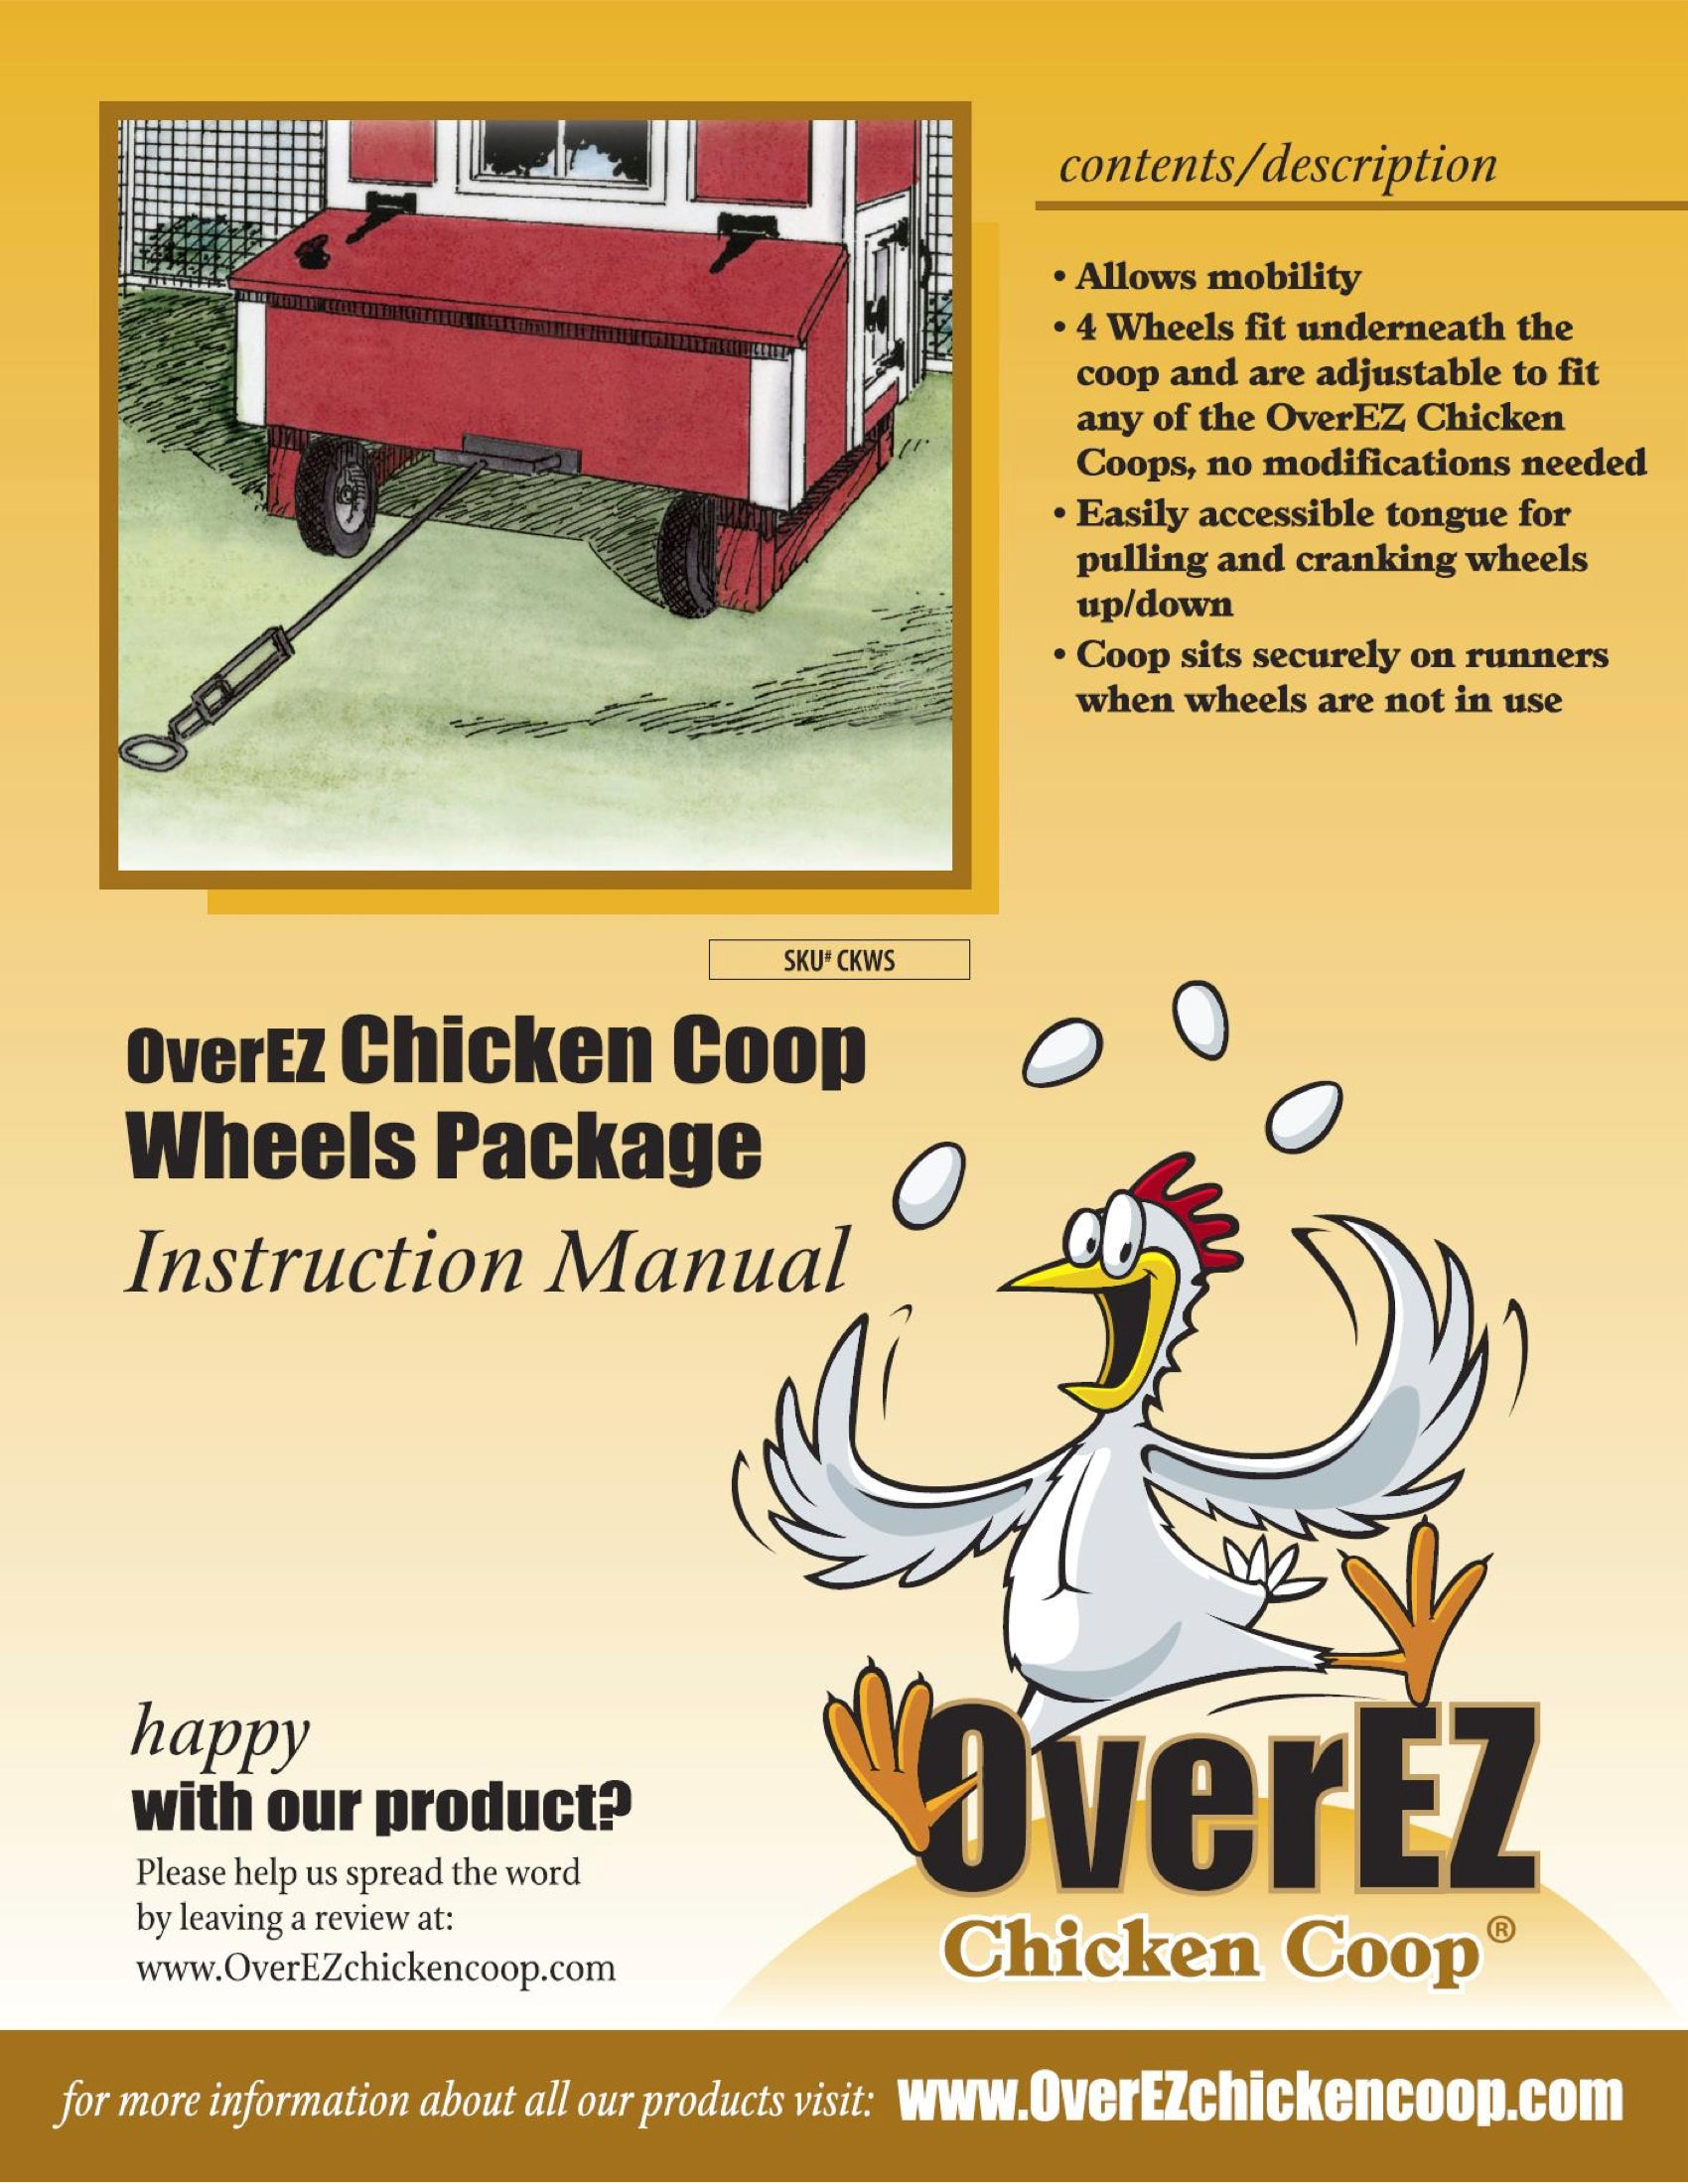 OverEZ Chicken Coop Wheels Instructions